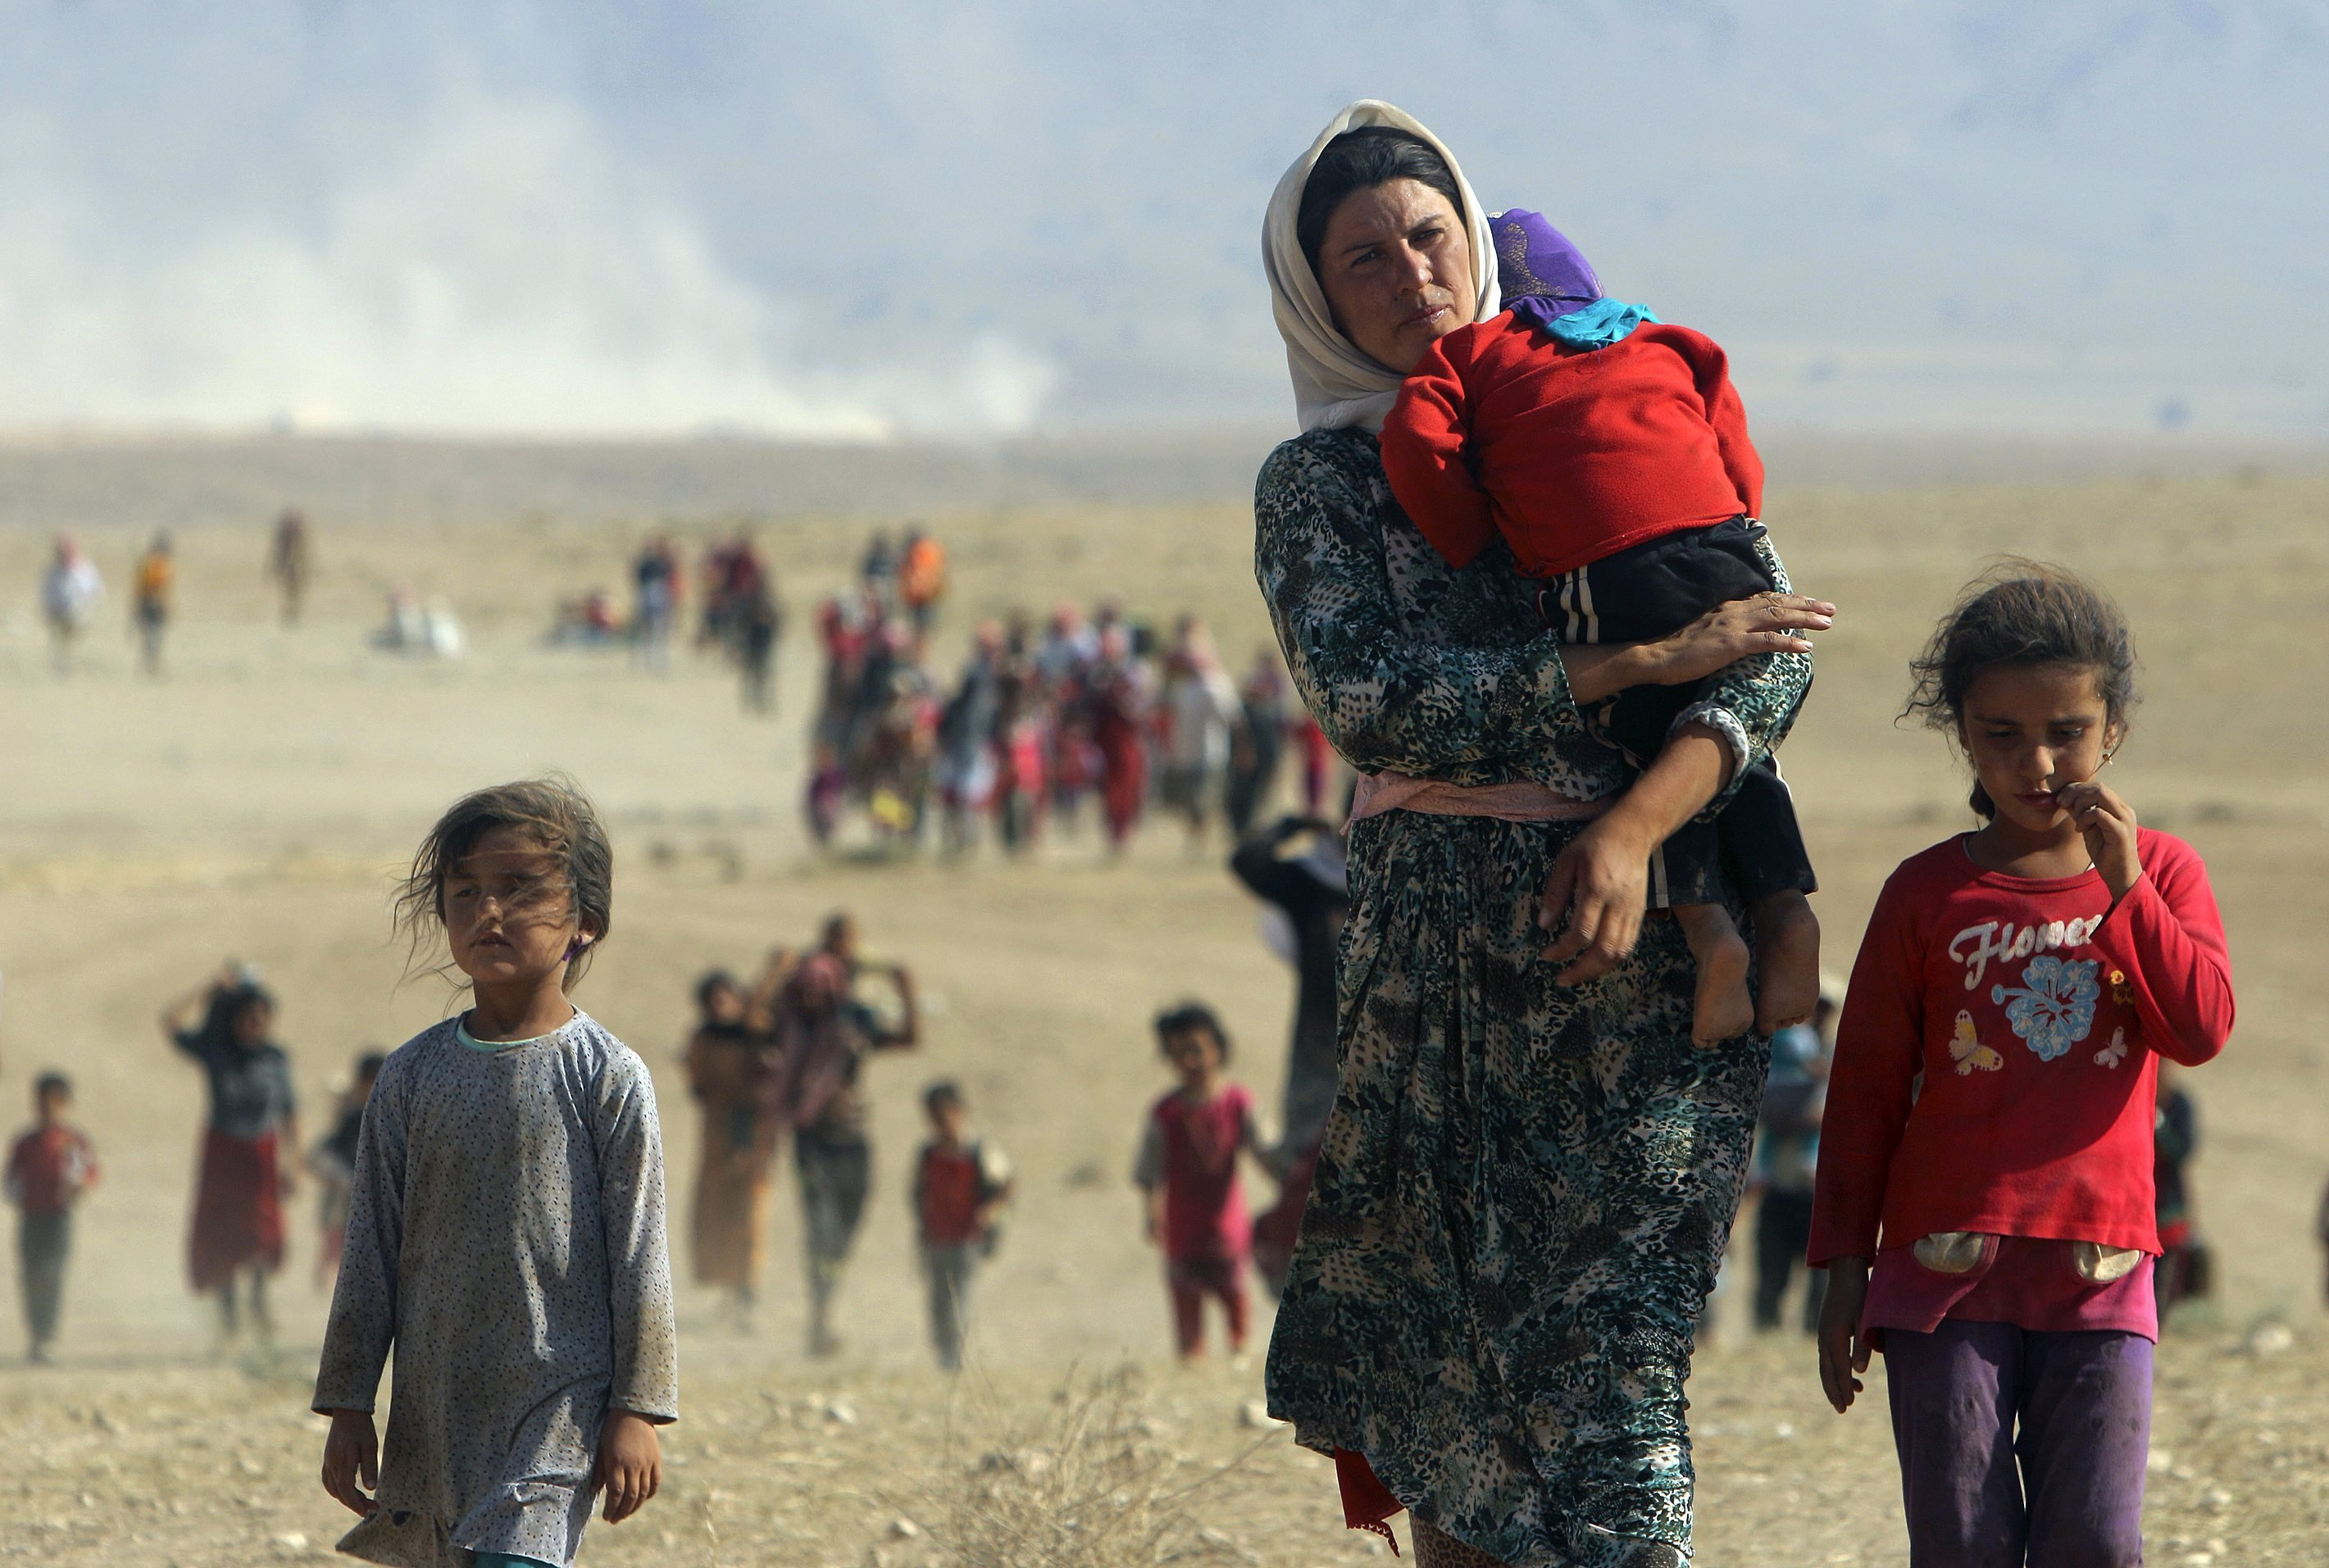 Displaced people from the minority Yazidi sect, fleeing violence from forces loyal to the Islamic State in Sinjar town, walk towards the Syrian border, on the outskirts of Sinjar mountain, near the Syrian border town of Elierbeh of Al-Hasakah Governorate on August 11, 2014.